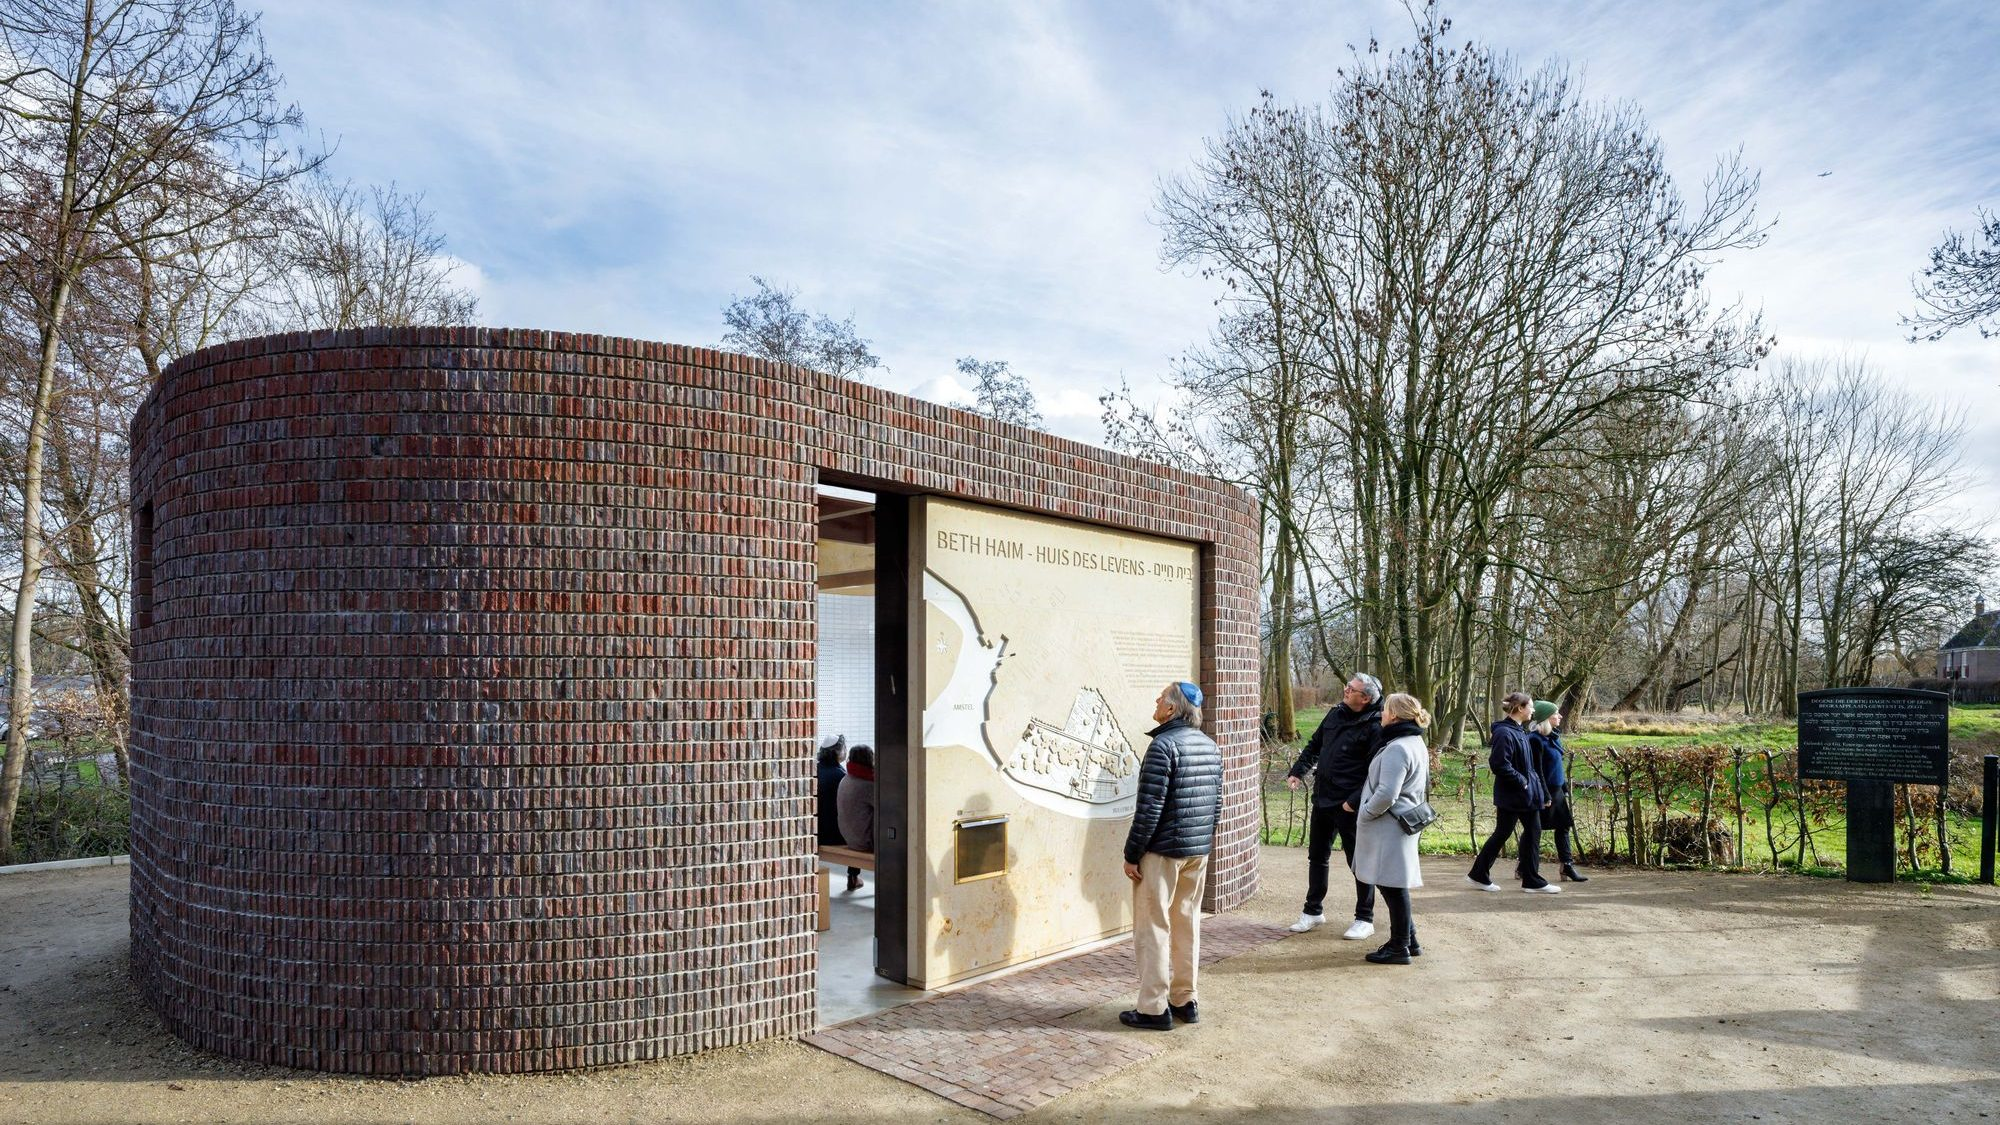 Beth Haim has been interpreted to make it more accessible to visitors